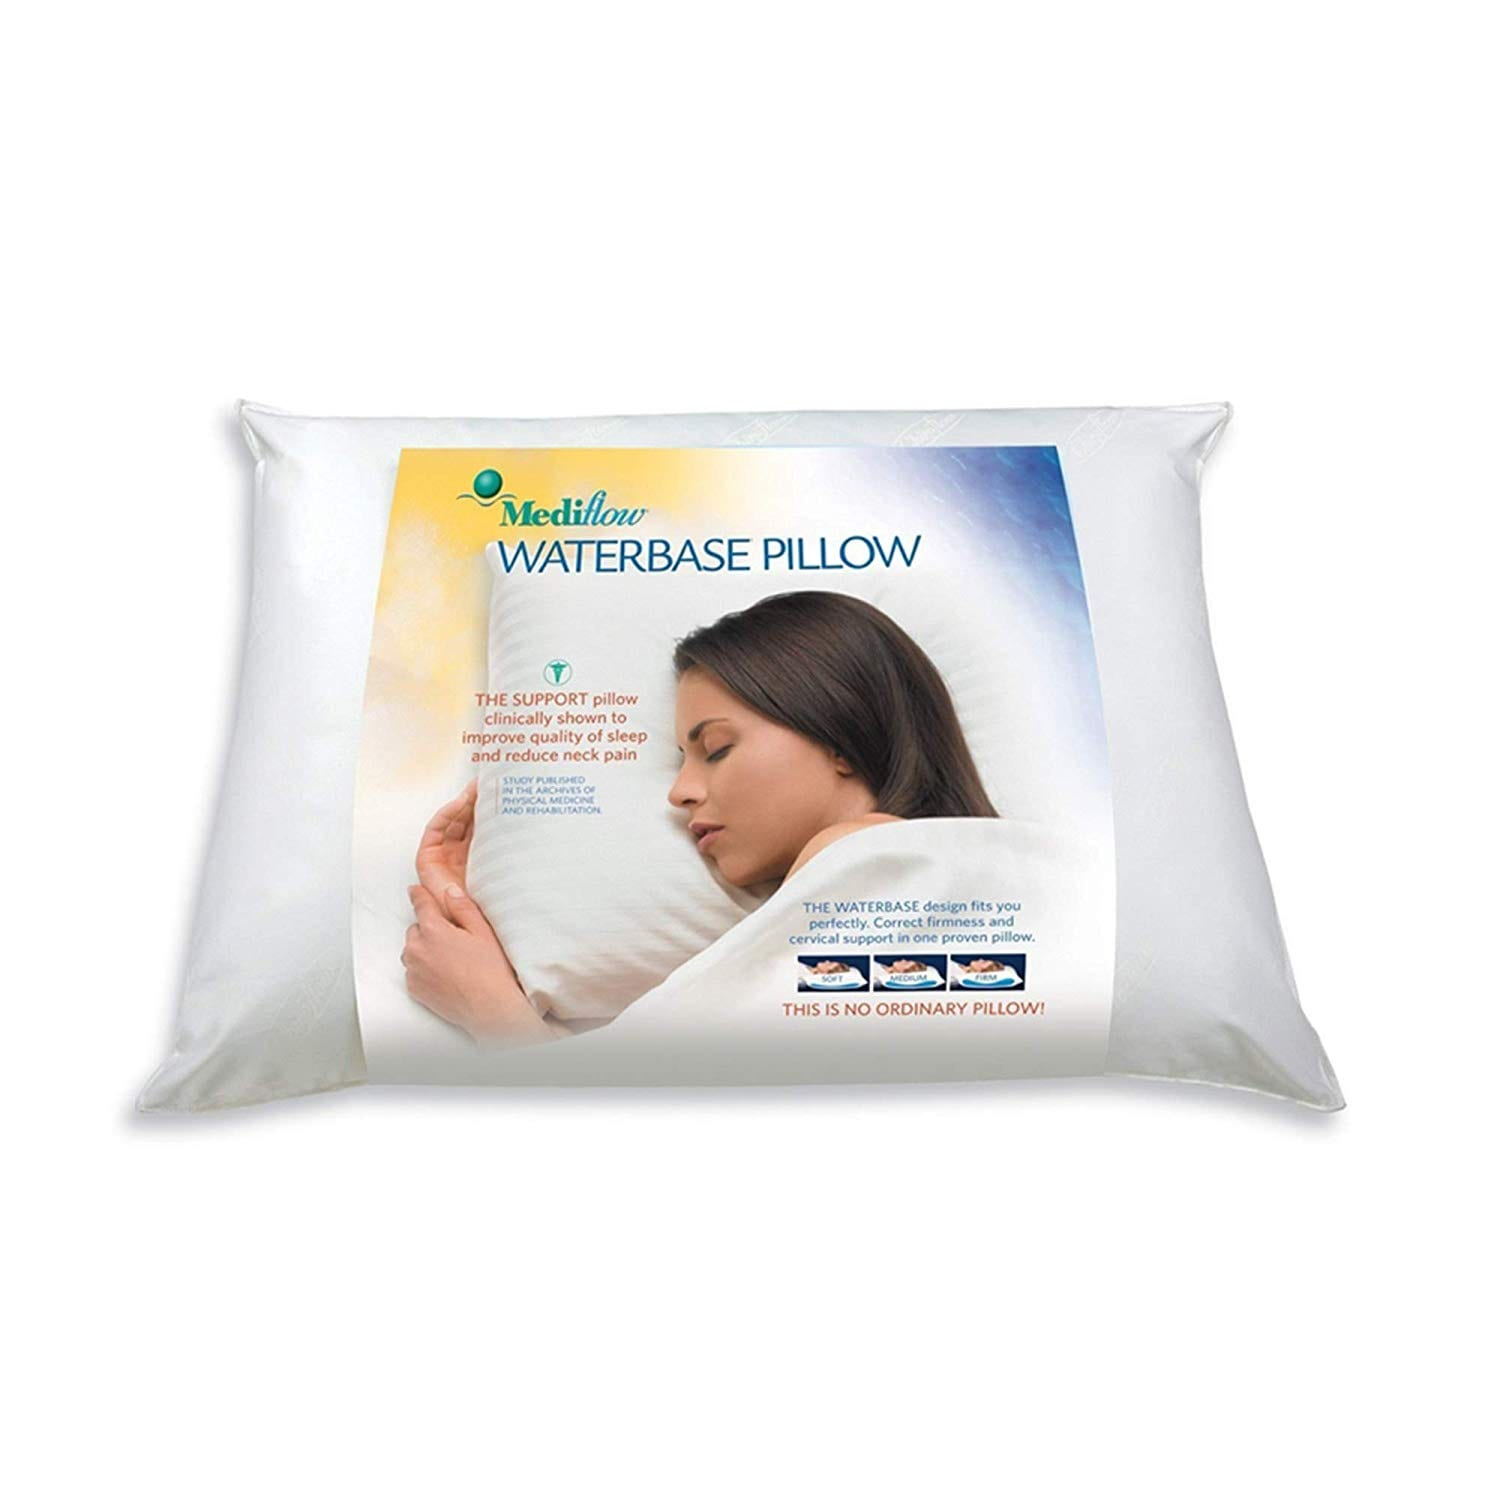 Mediflow best pillows for shoulder pain review by www.dailysleep.org